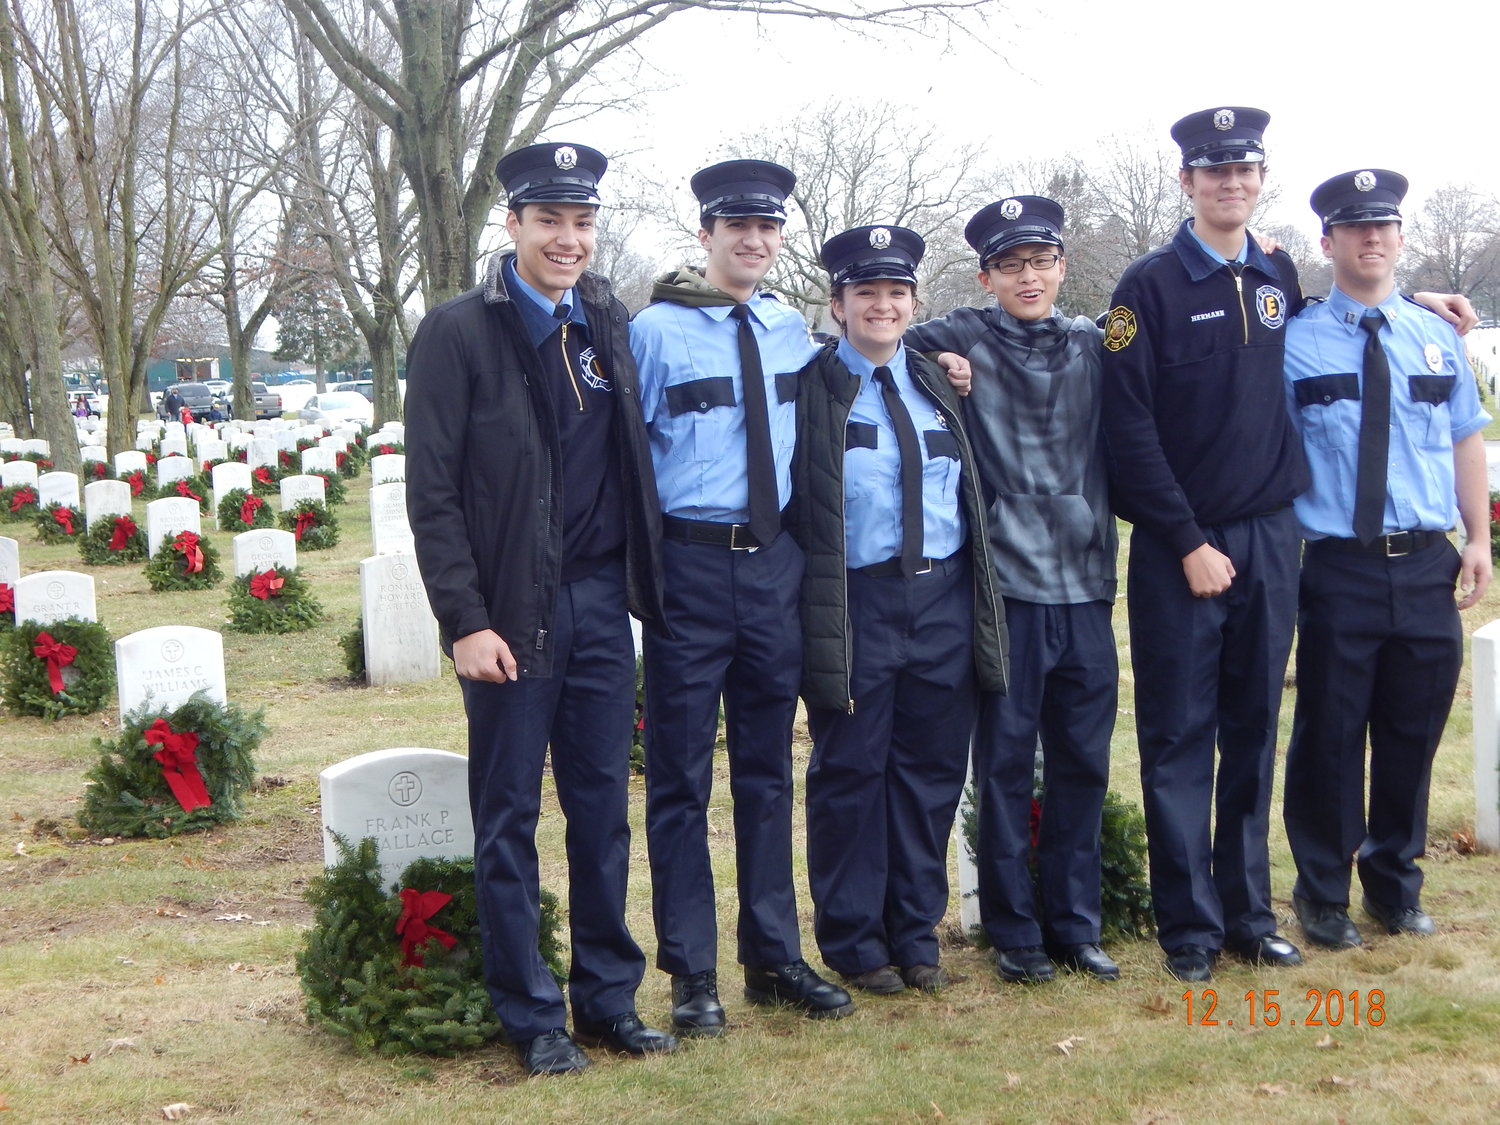 Six members of the Franklin Square & Munson Fire Department Explorer Post 710 took part in the 2018 Wreath Across America Day on Dec. 15.